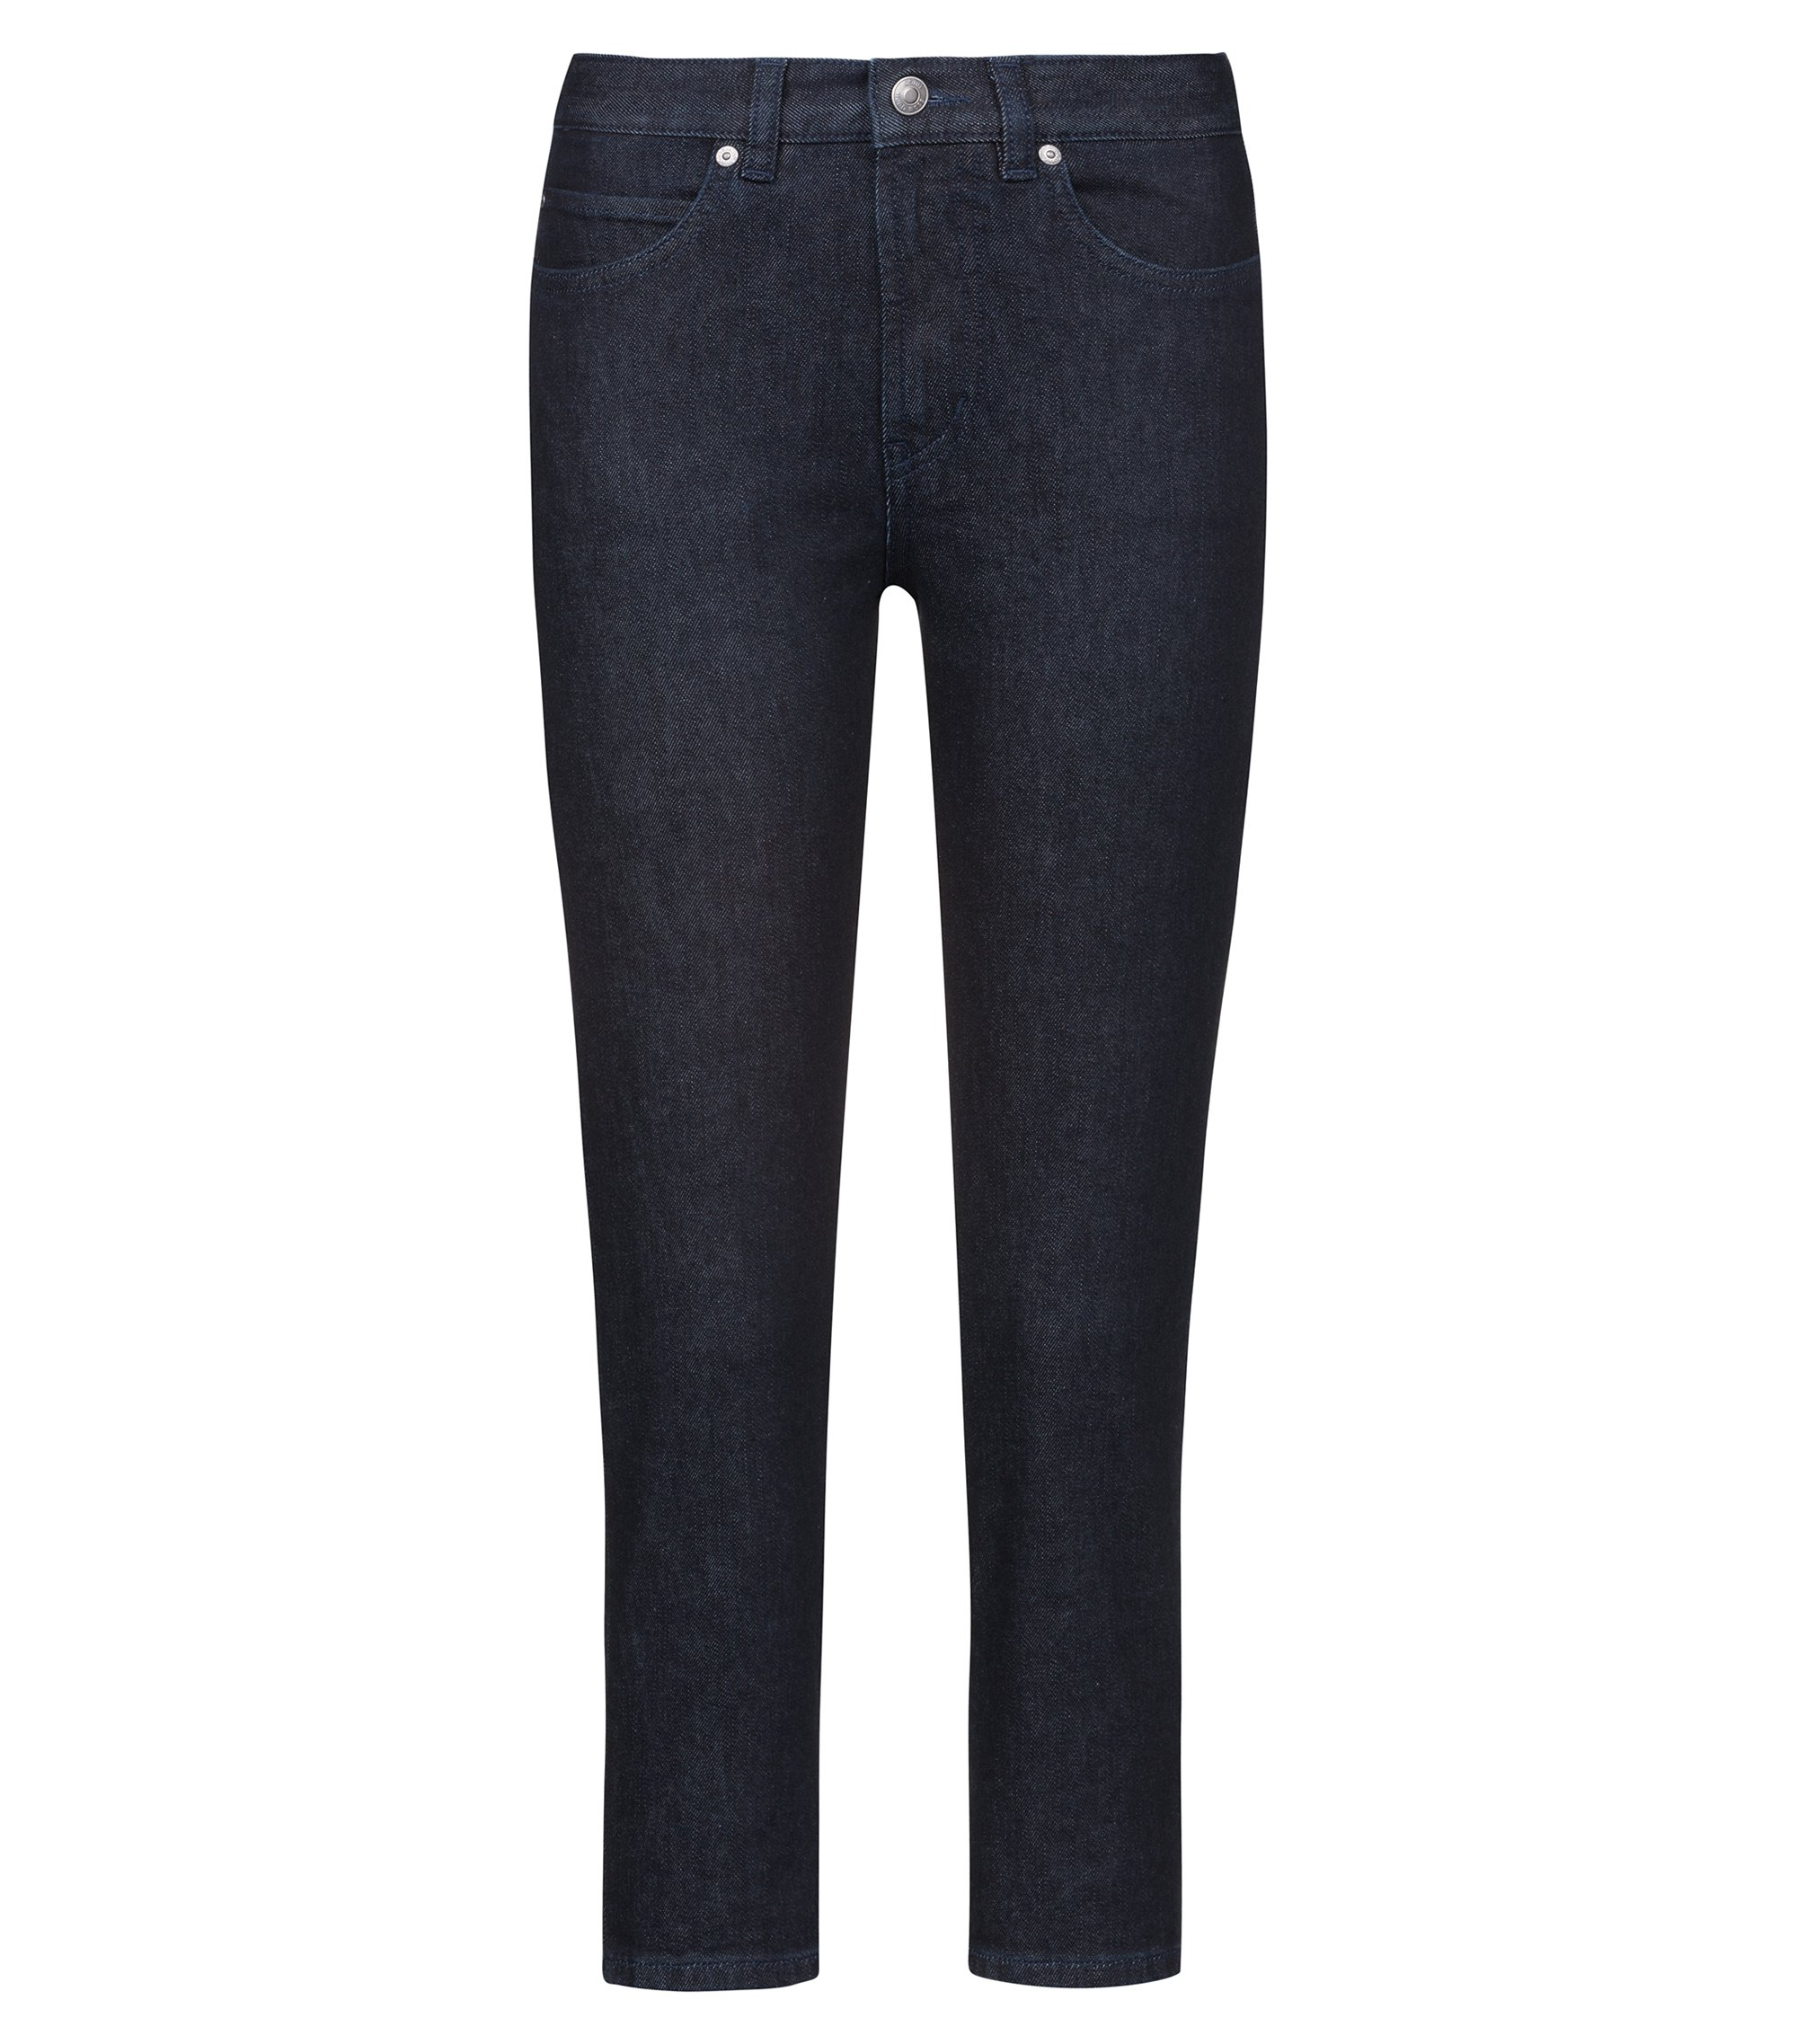 Slim-Fit Jeans in Cropped-Länge aus Stretch-Denim mit Reversed-Logo, Dunkelblau